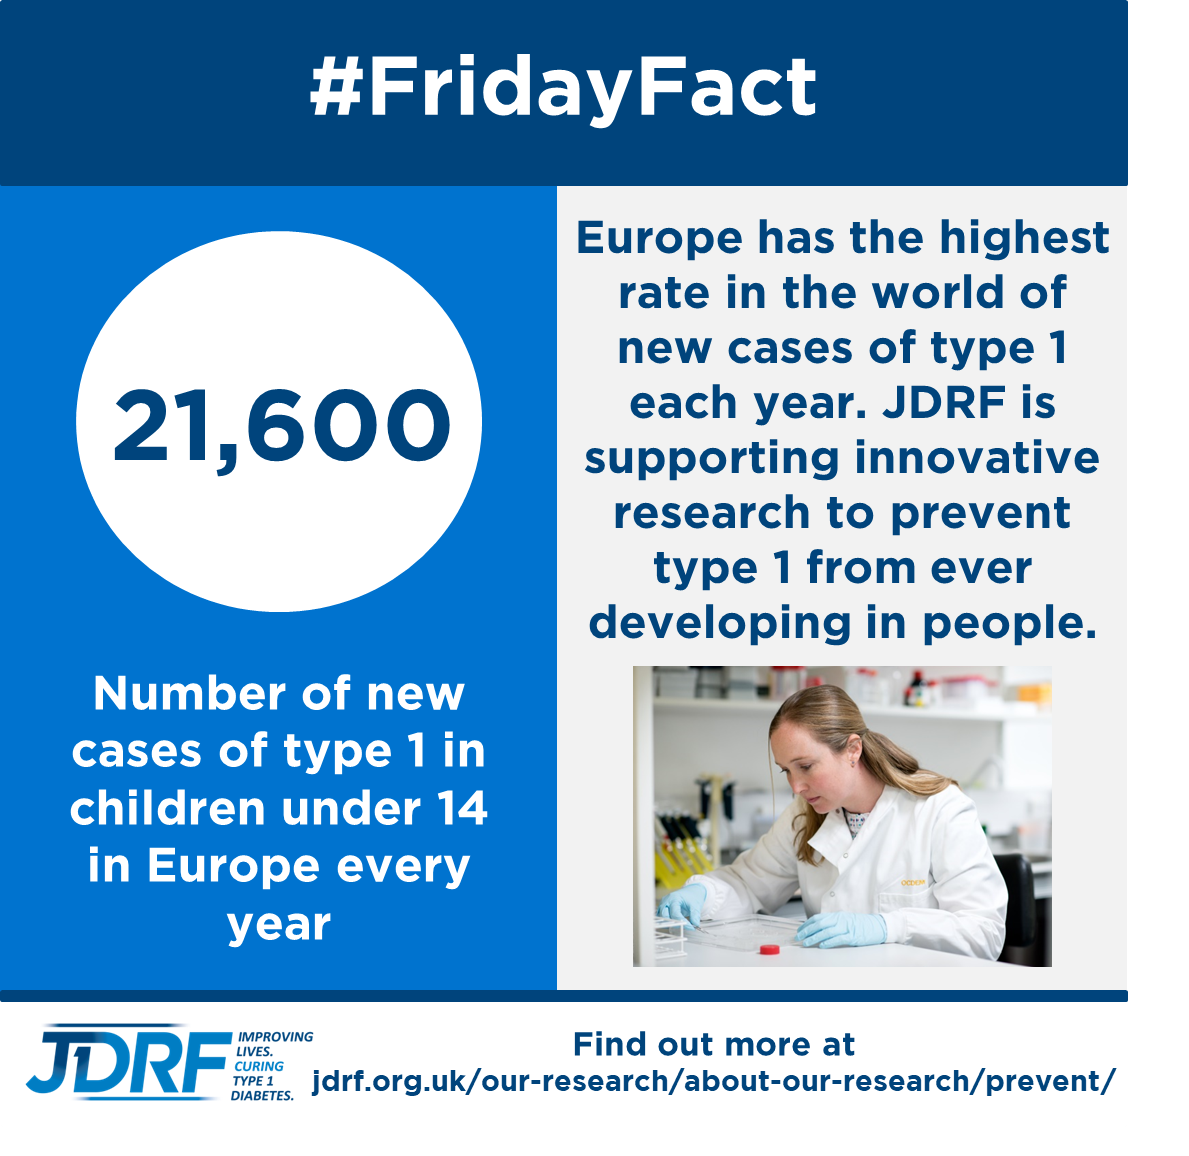 test Twitter Media - There are over 21,000 new cases of type 1 #diabetes in children under 14 years old in Europe every year. #FridayFact https://t.co/meQGoHwTCc https://t.co/TPZzy2Rcwy